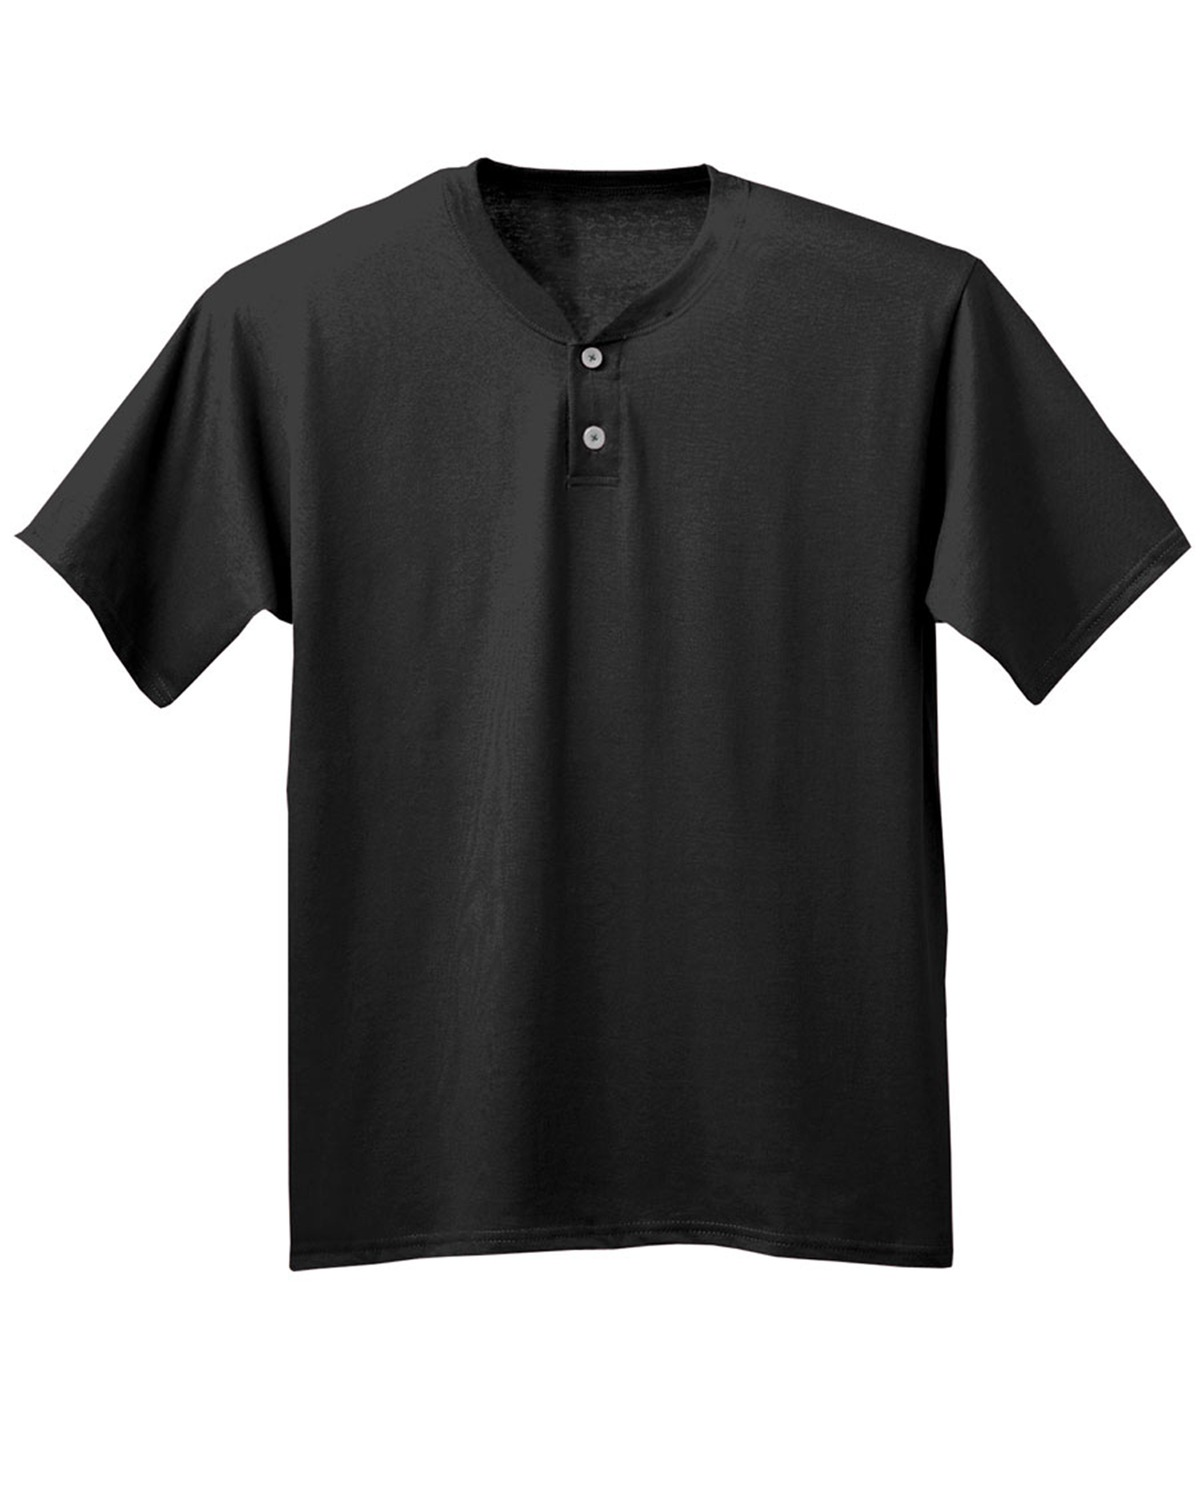 Adult Tek 2-Button Henley Jersey